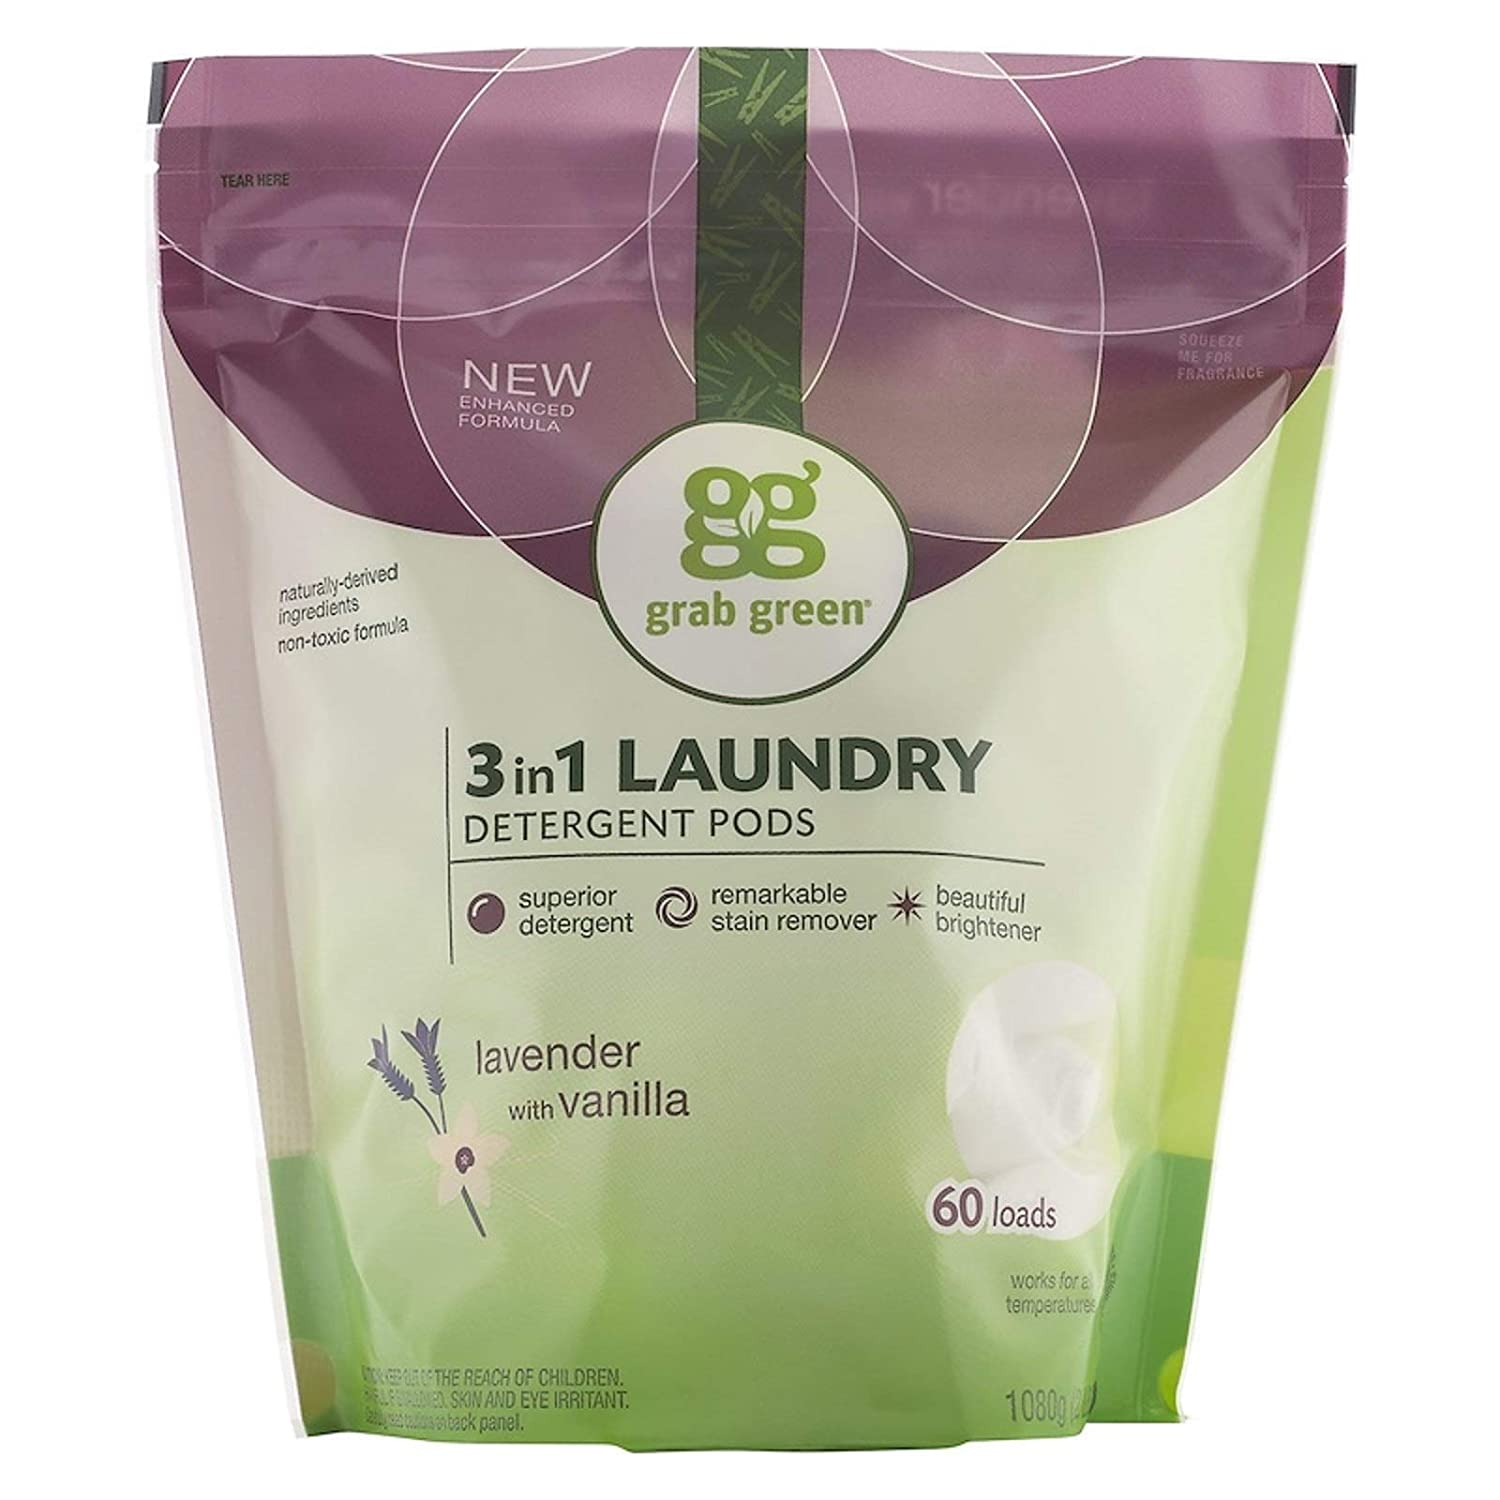 Laundry Detergent Pods 3-in-1 Fragrance Free and Hypoallergenic Naturally-Derived Ingredients 60 Loads 2lbs 6oz 1080 g (Lavender with Vanilla)